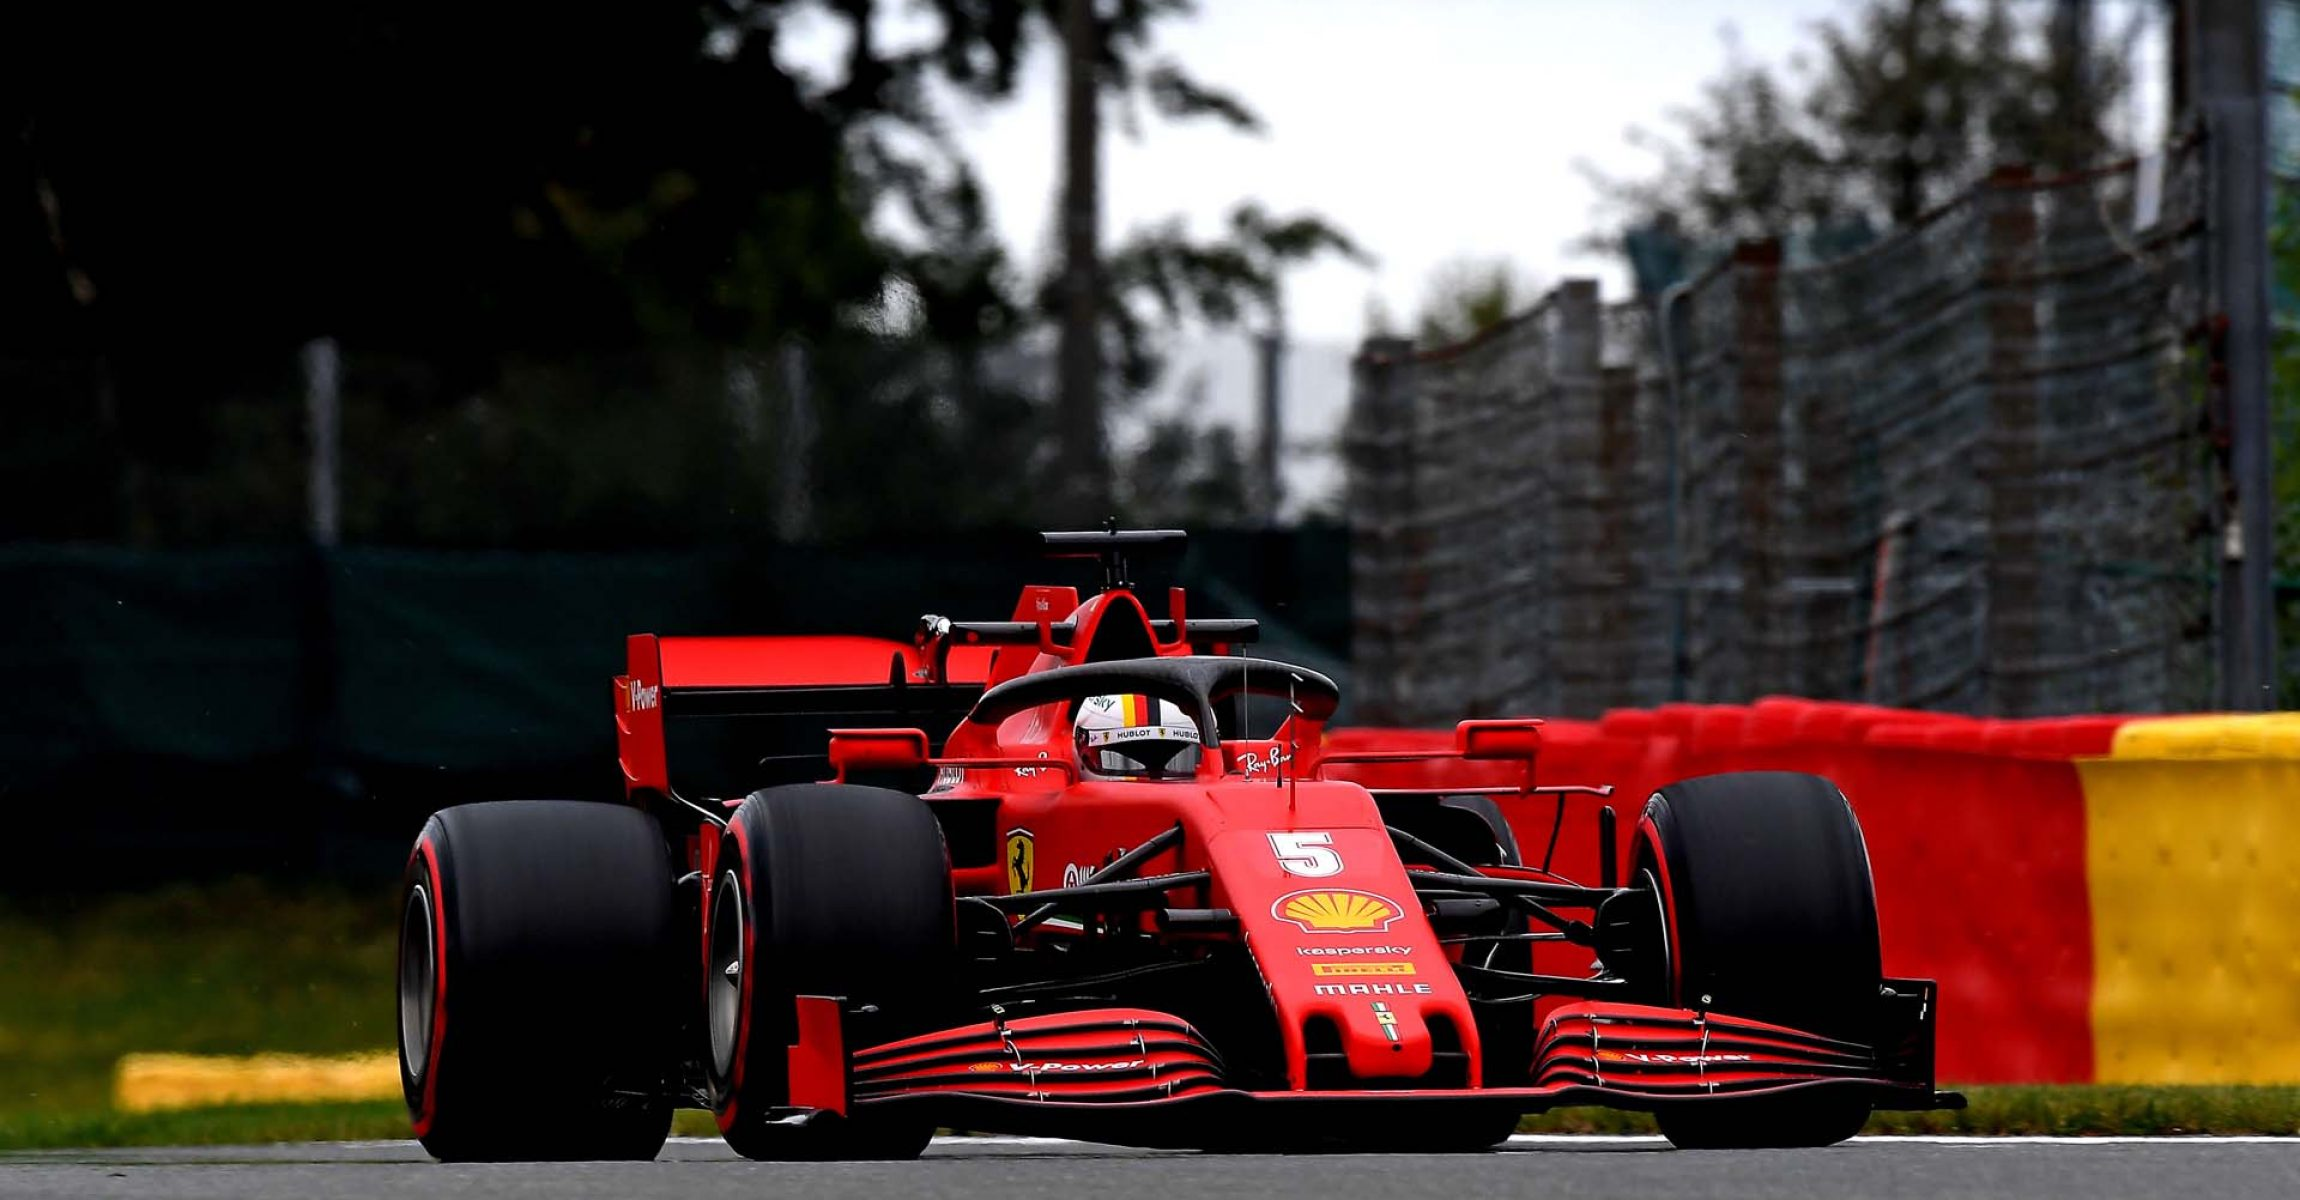 GP BELGIO F1/2020 -  VENERDÌ 28/08/2020   credit: @Scuderia Ferrari Press Office Sebastian Vettel